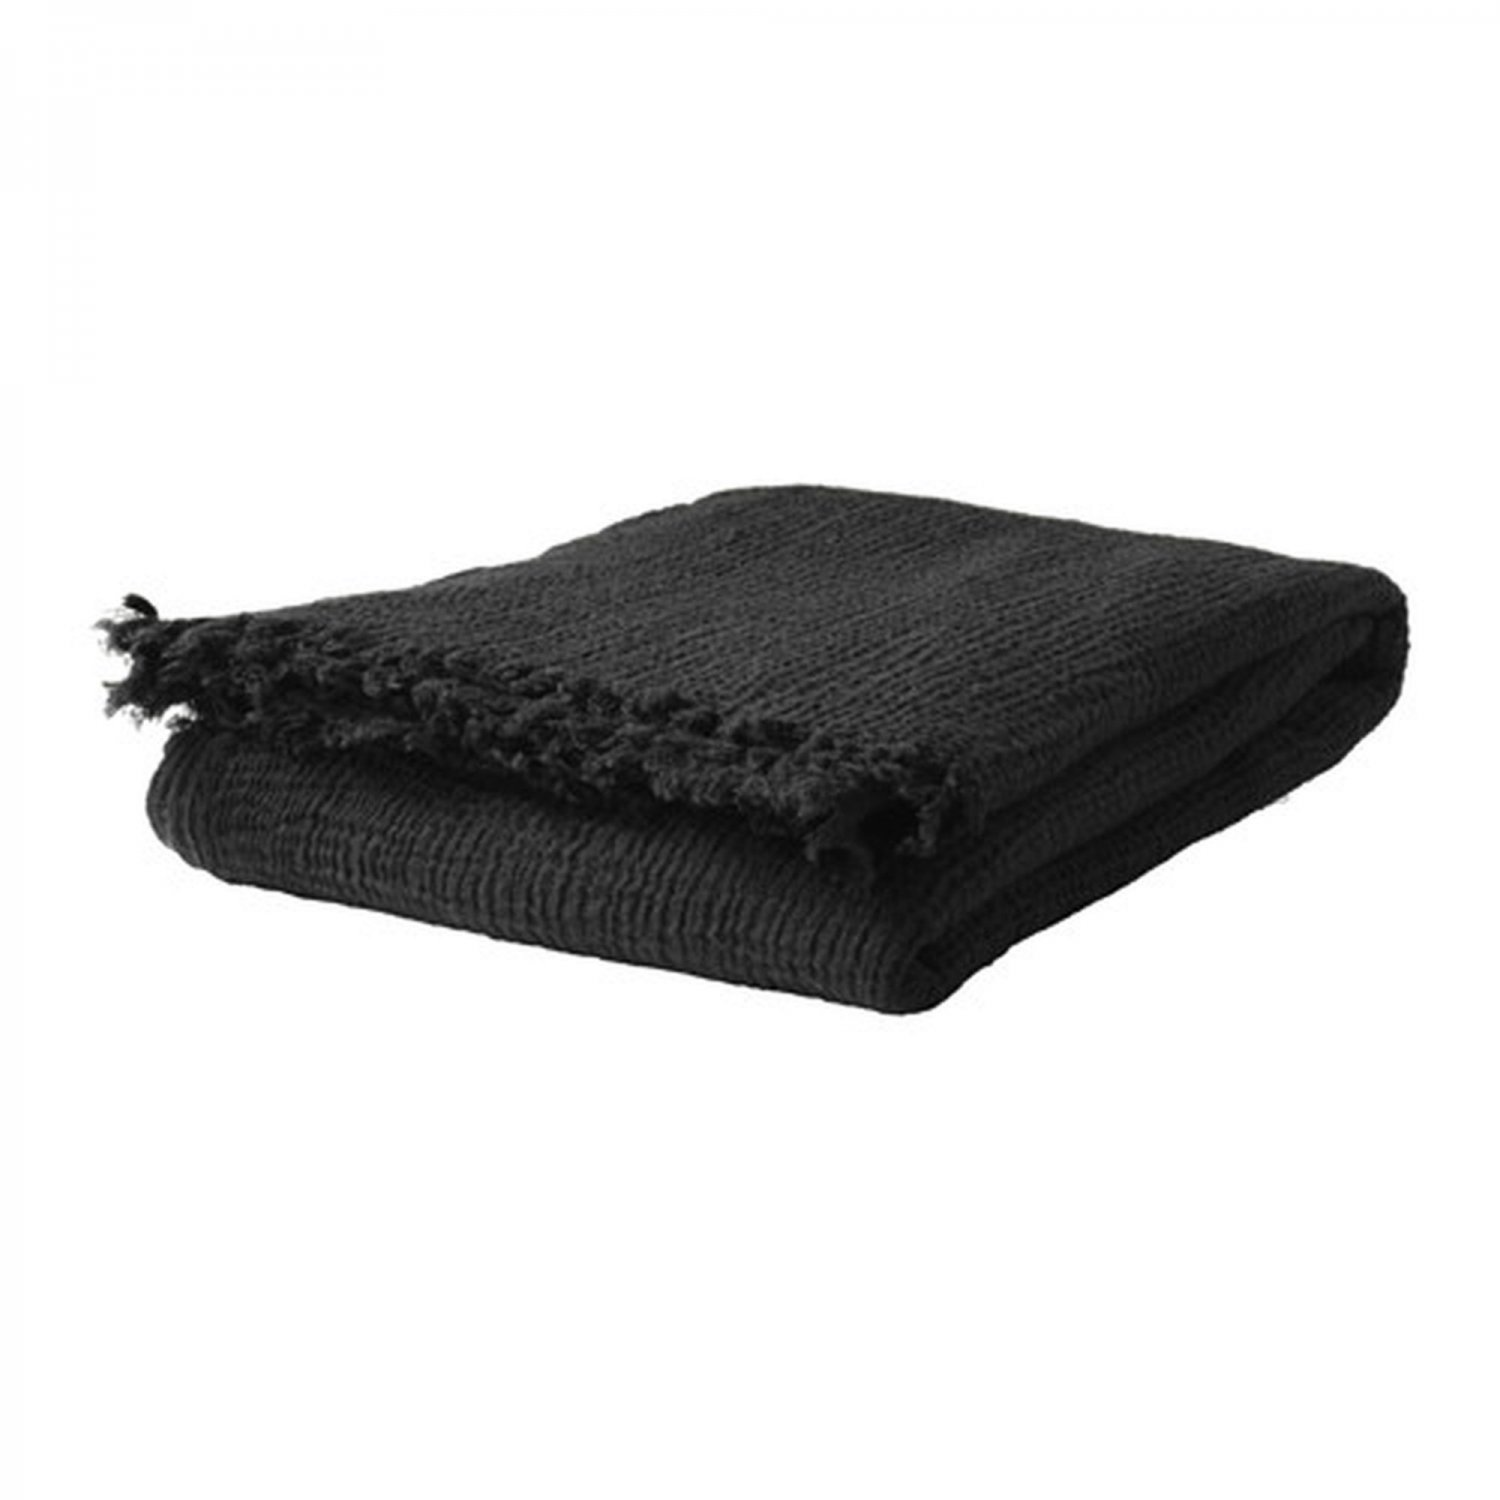 IKEA Svartan Throw BLANKET Afghan BLACK Textured SV�RTAN Wool Blend